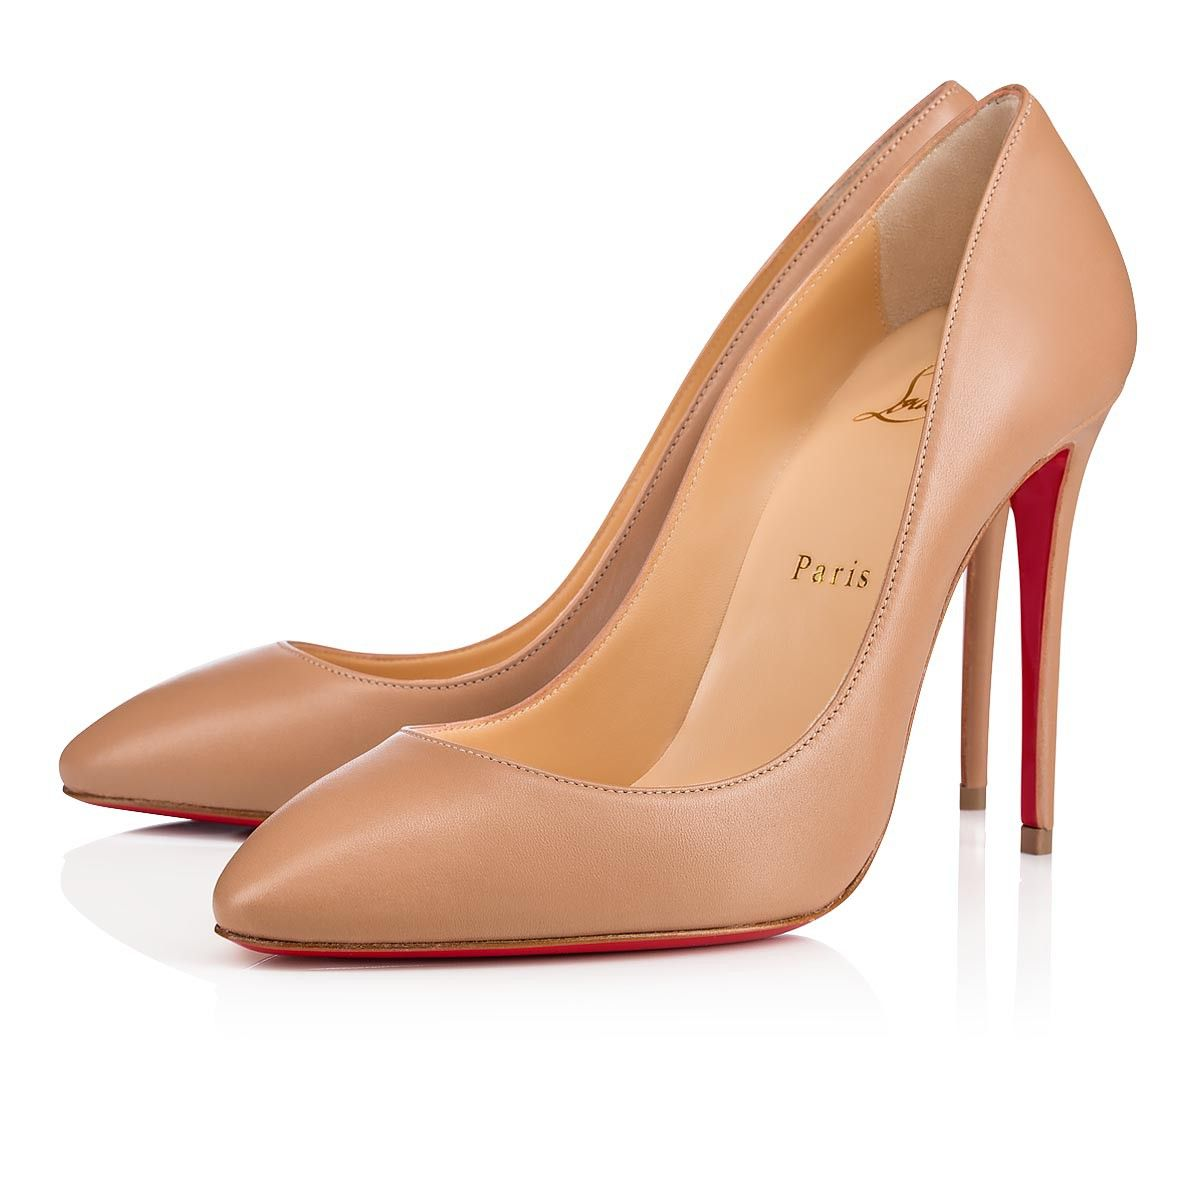 caa2c271392c Christian Louboutin United States Official Online Boutique - Eloise 100  Nude Leather available online. Discover more Women Shoes by Christian  Louboutin